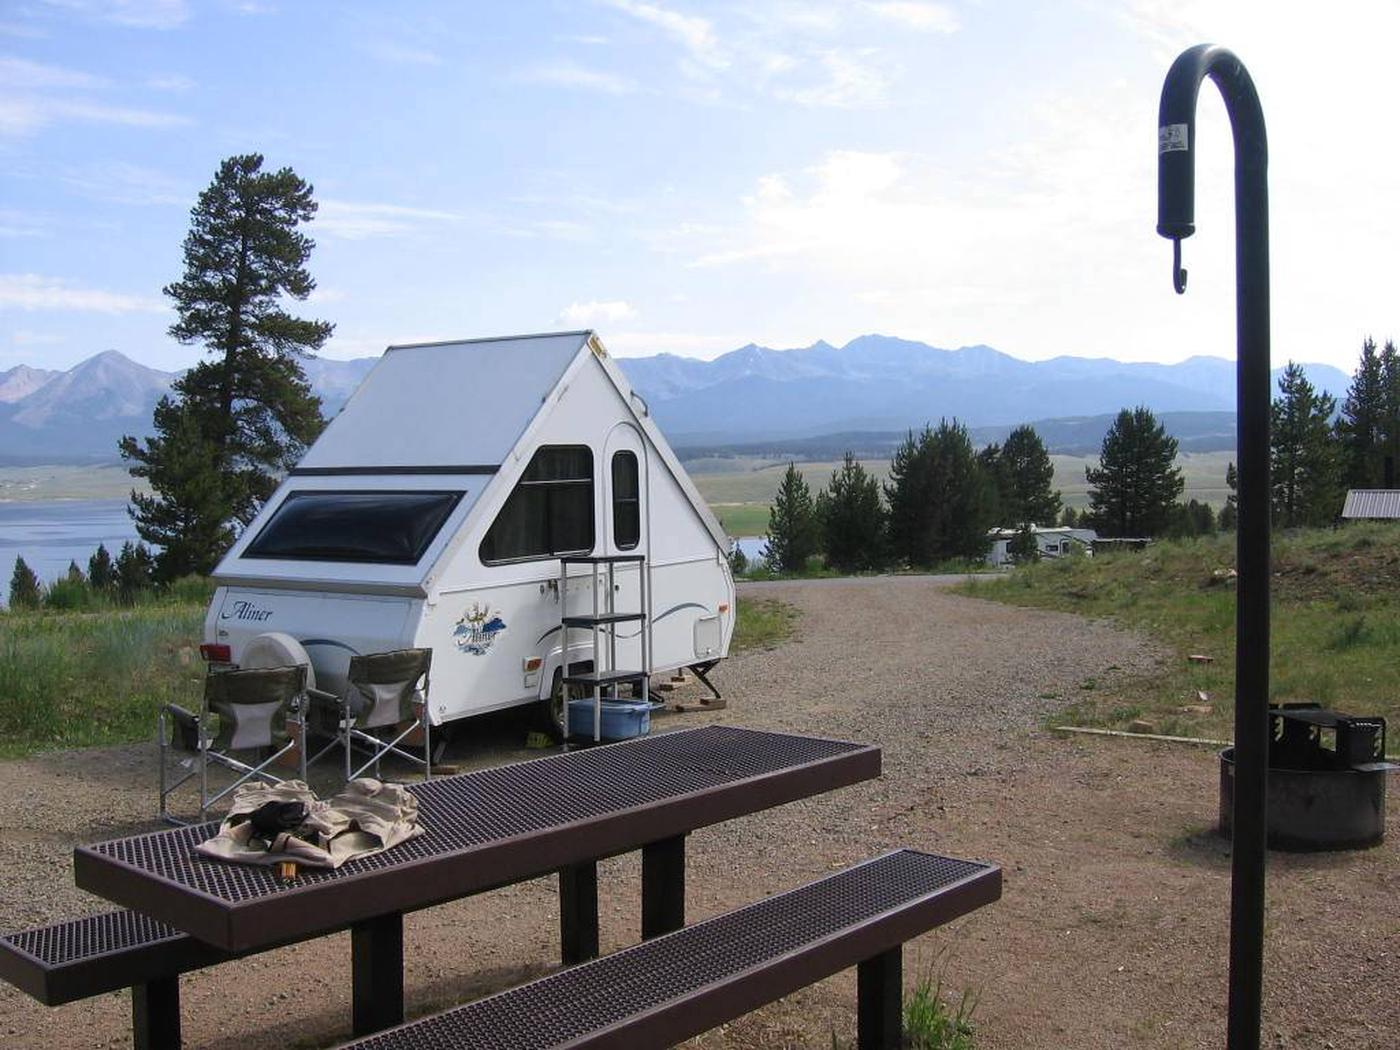 Lakeview Gunnison Campground